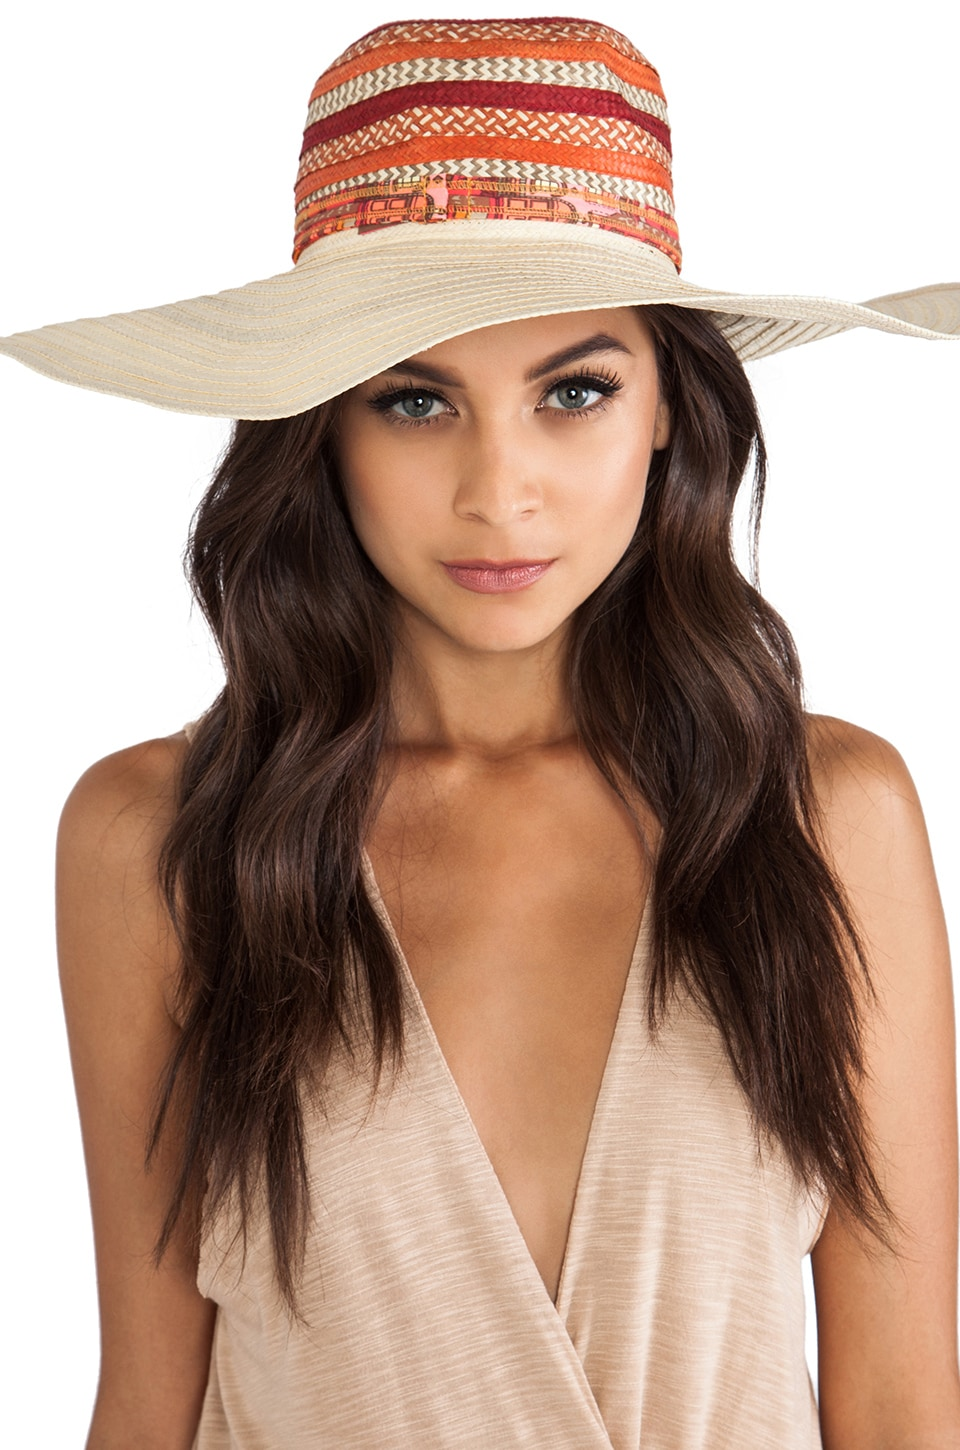 Maaji Floppy Hat in Orange